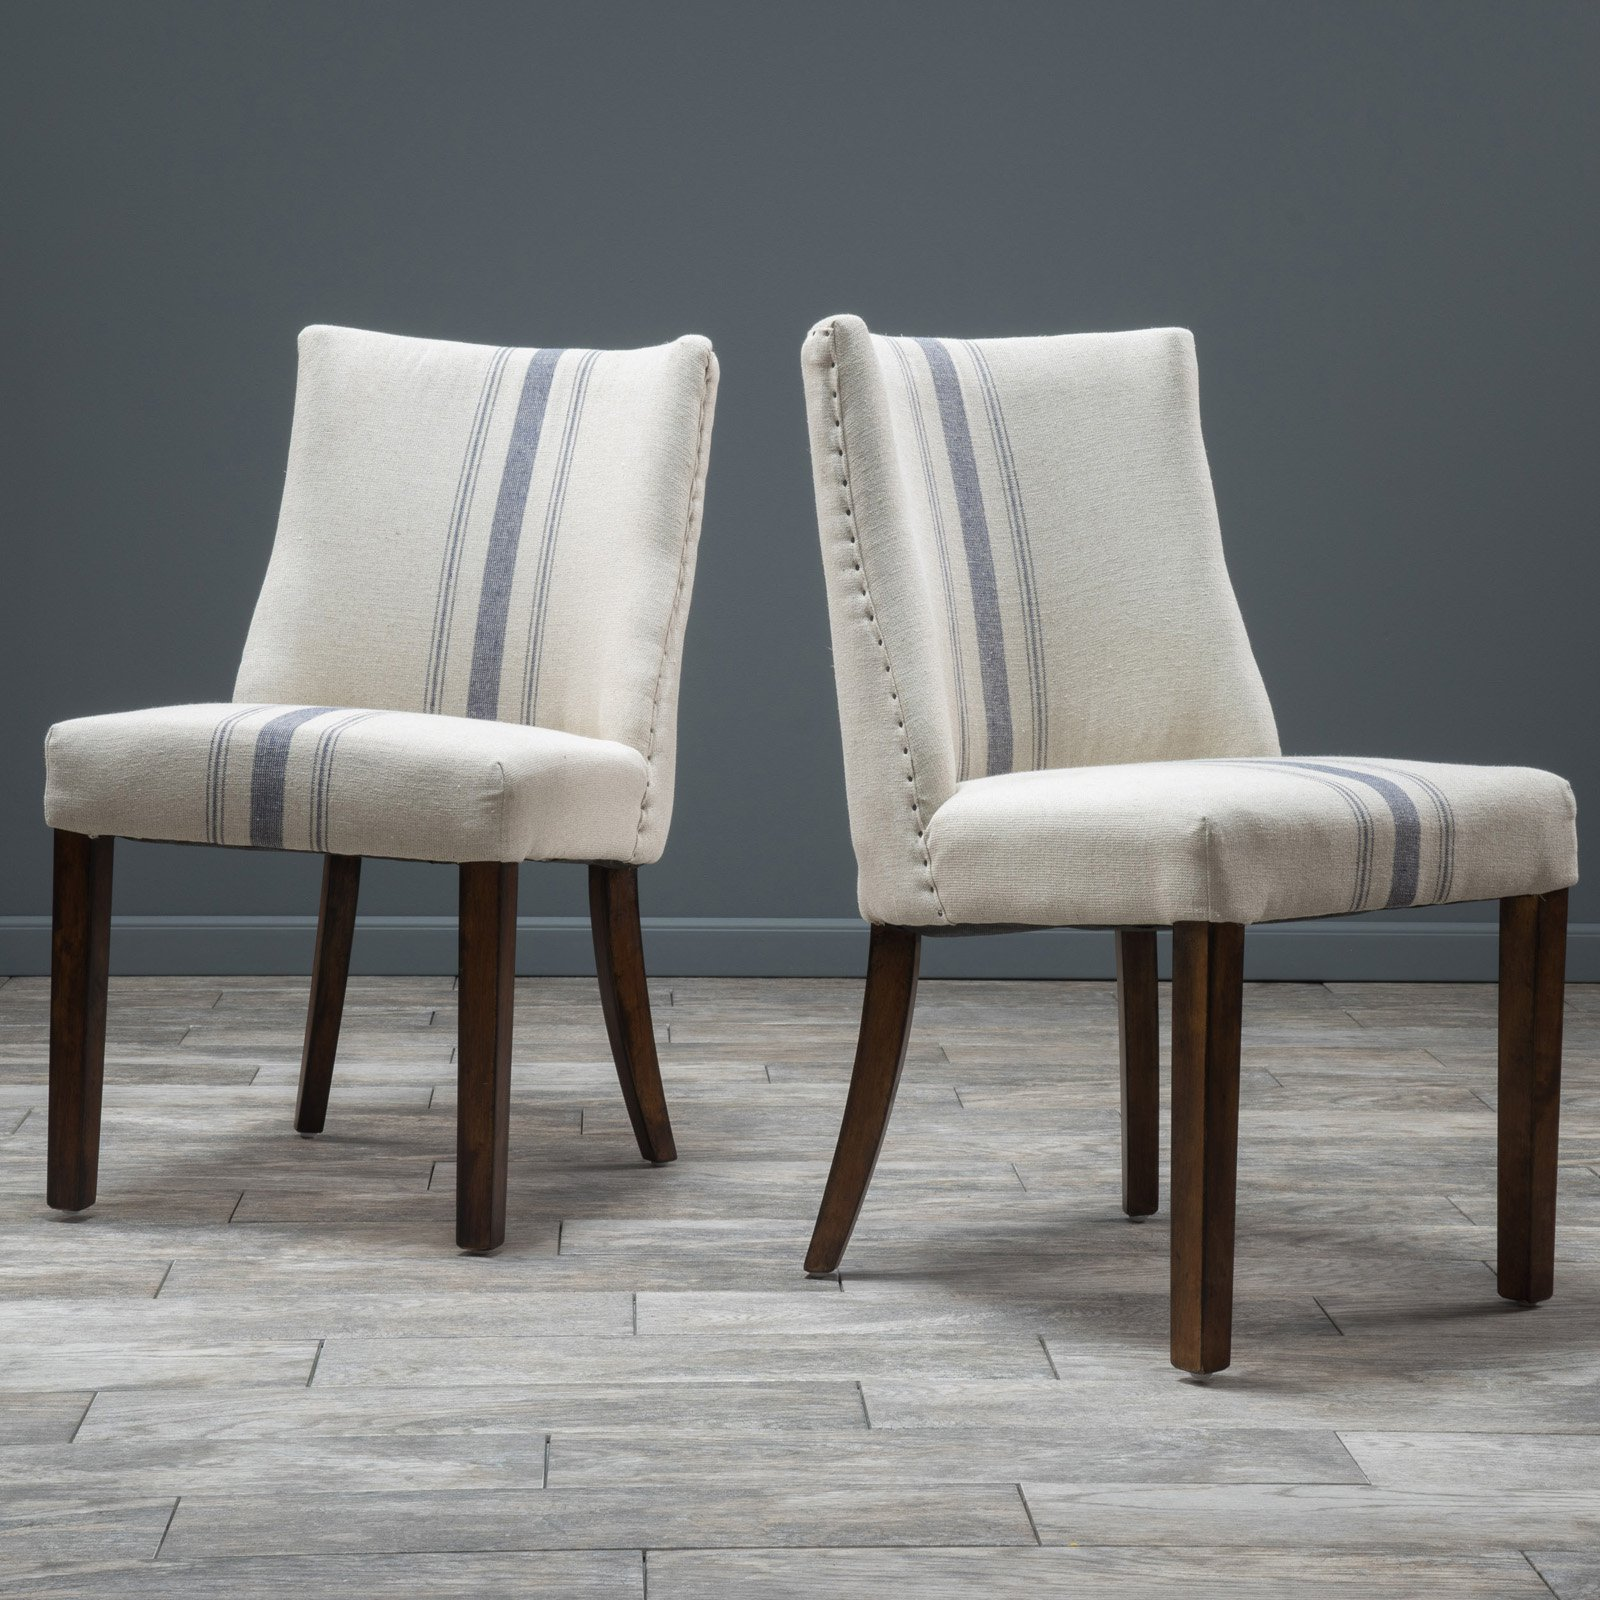 Best Selling Home Dolcetto Parsons Dining Chair Set of 2 by Overstock